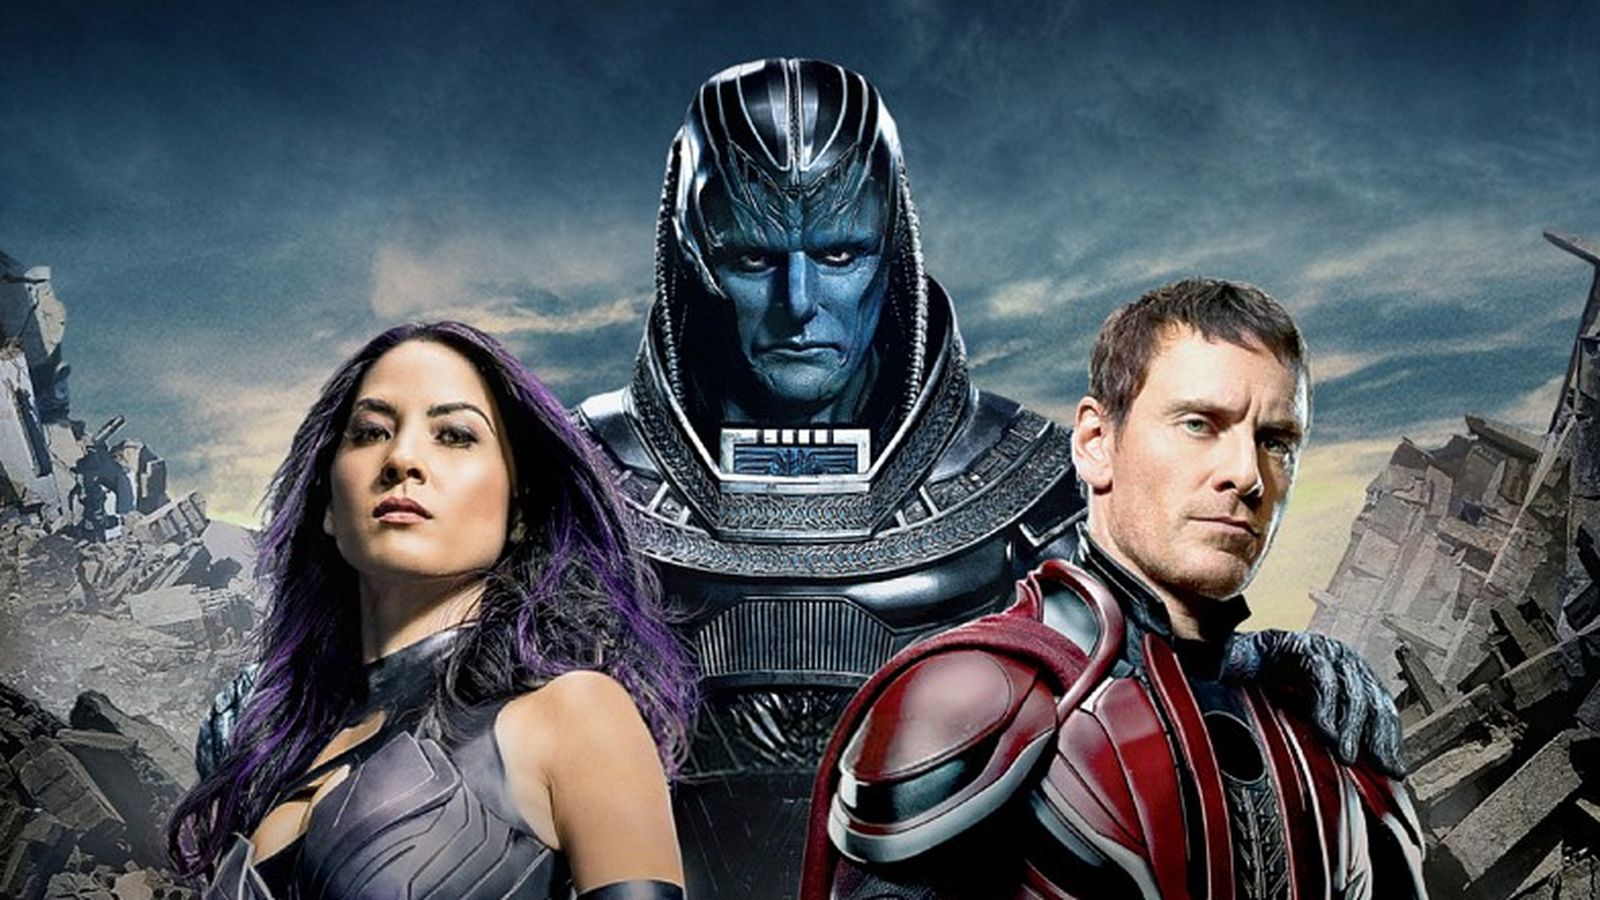 X-men Apocalypse: The end of the world for the X-men?